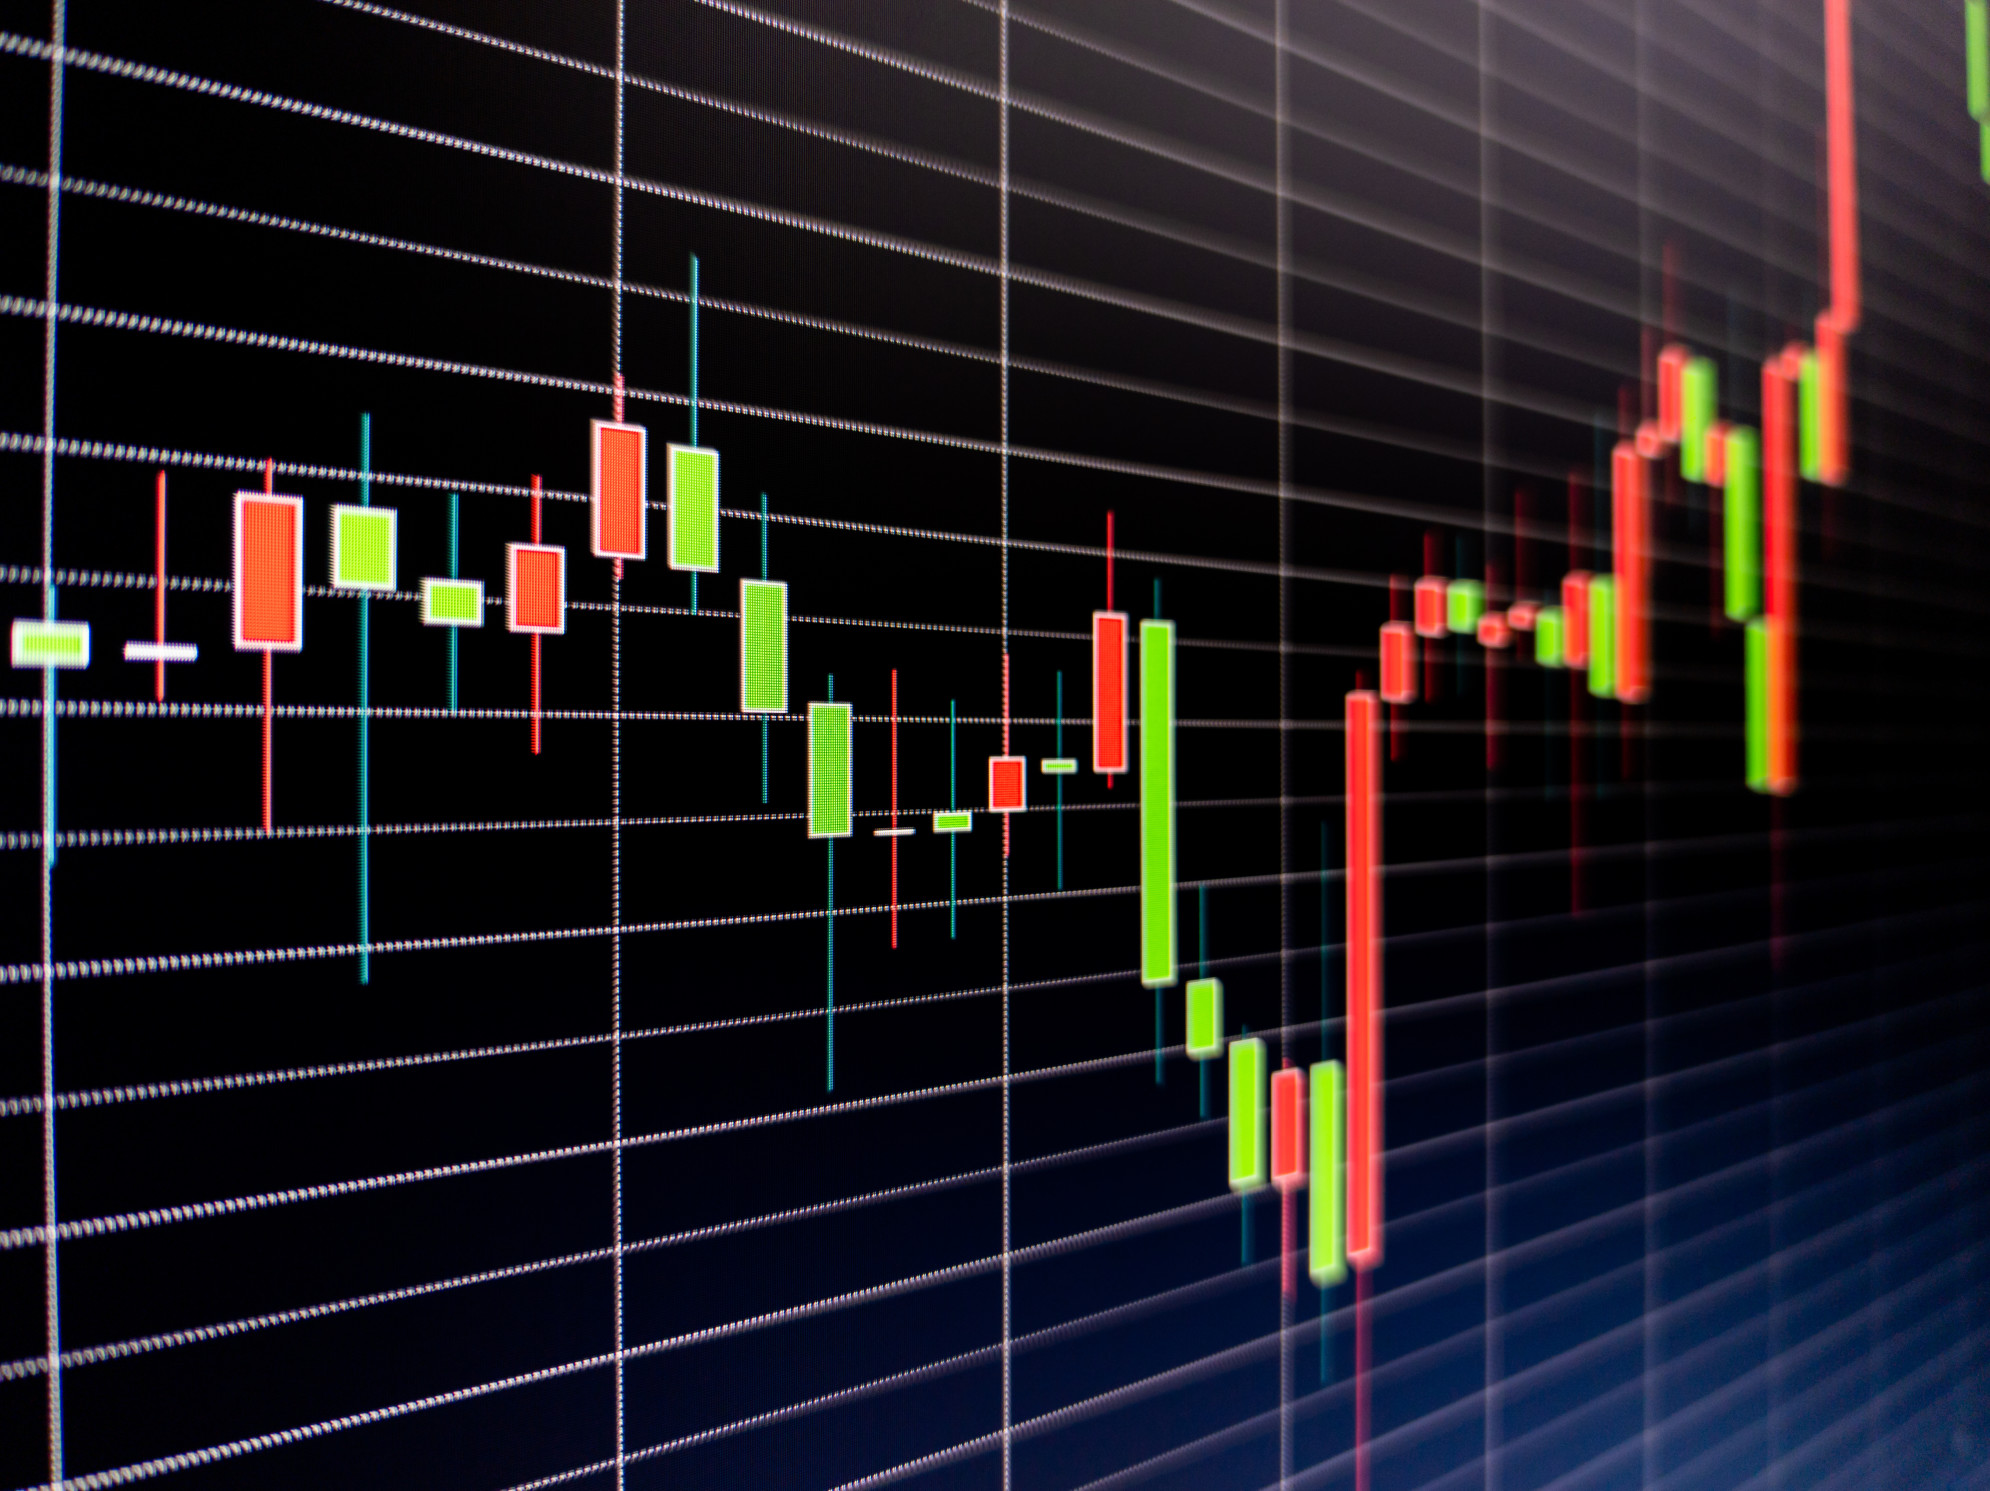 SMART Global Holdings Inc: Small-Cap Technology Stock Could Double